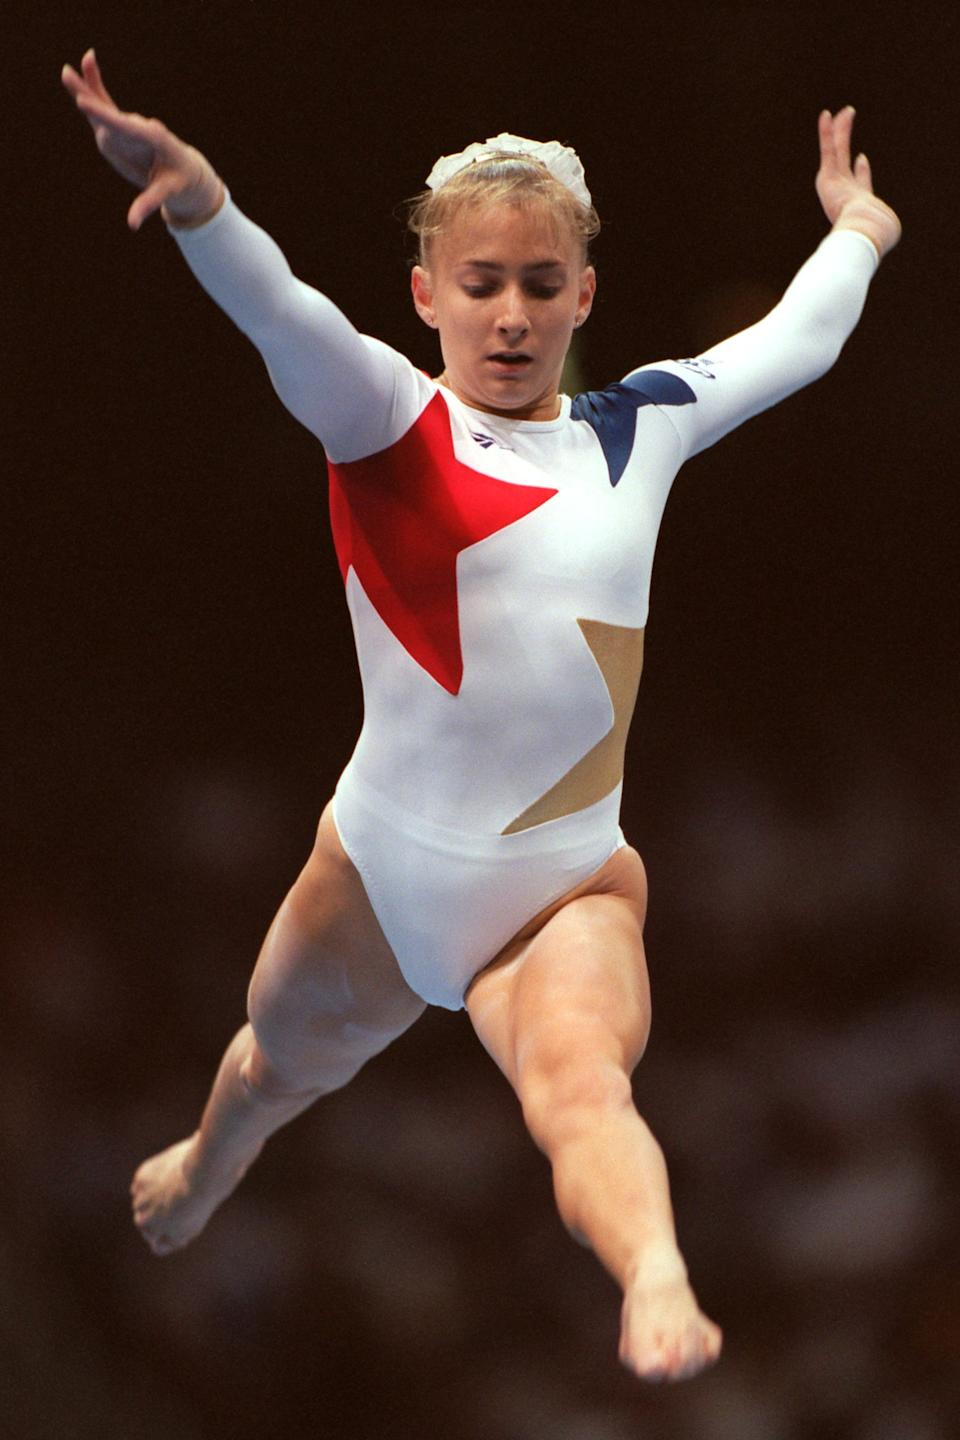 Miller competed at the '92 and '96 Olympics. (Photo: Aubrey Washington/EMPICS via Getty Images)